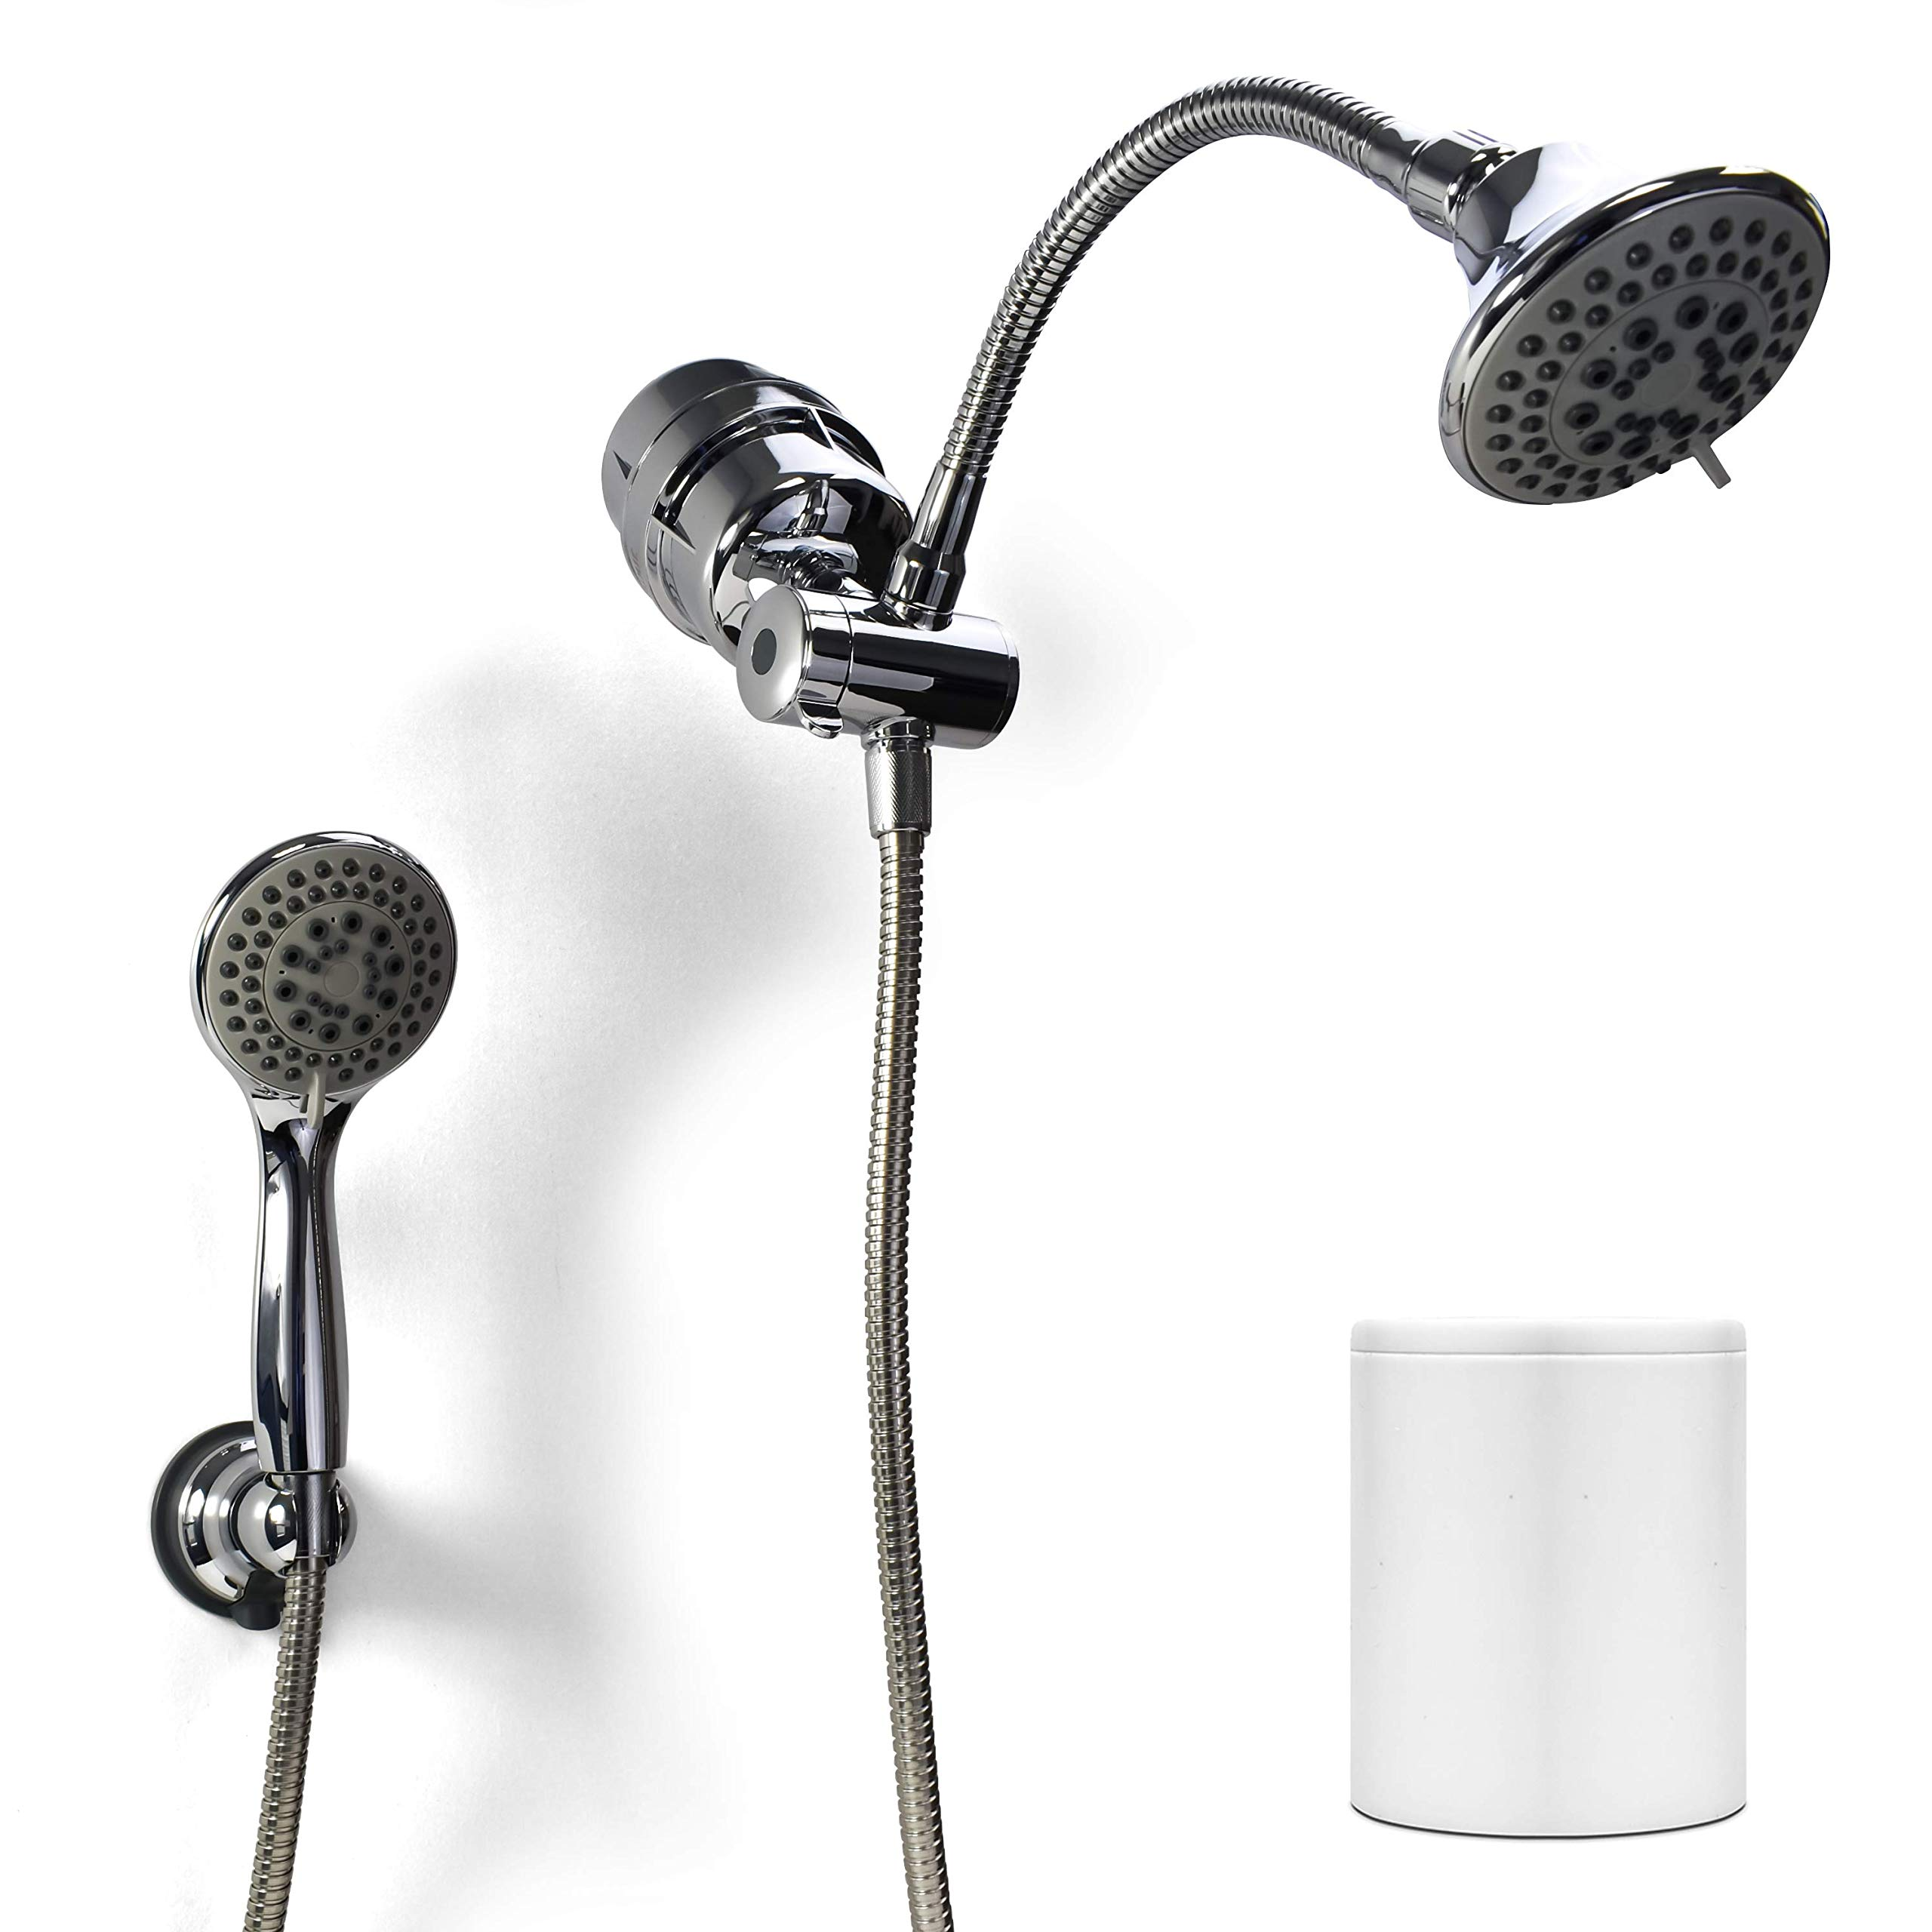 Propur Dual Head Chrome Shower Filter With ProMax Technology